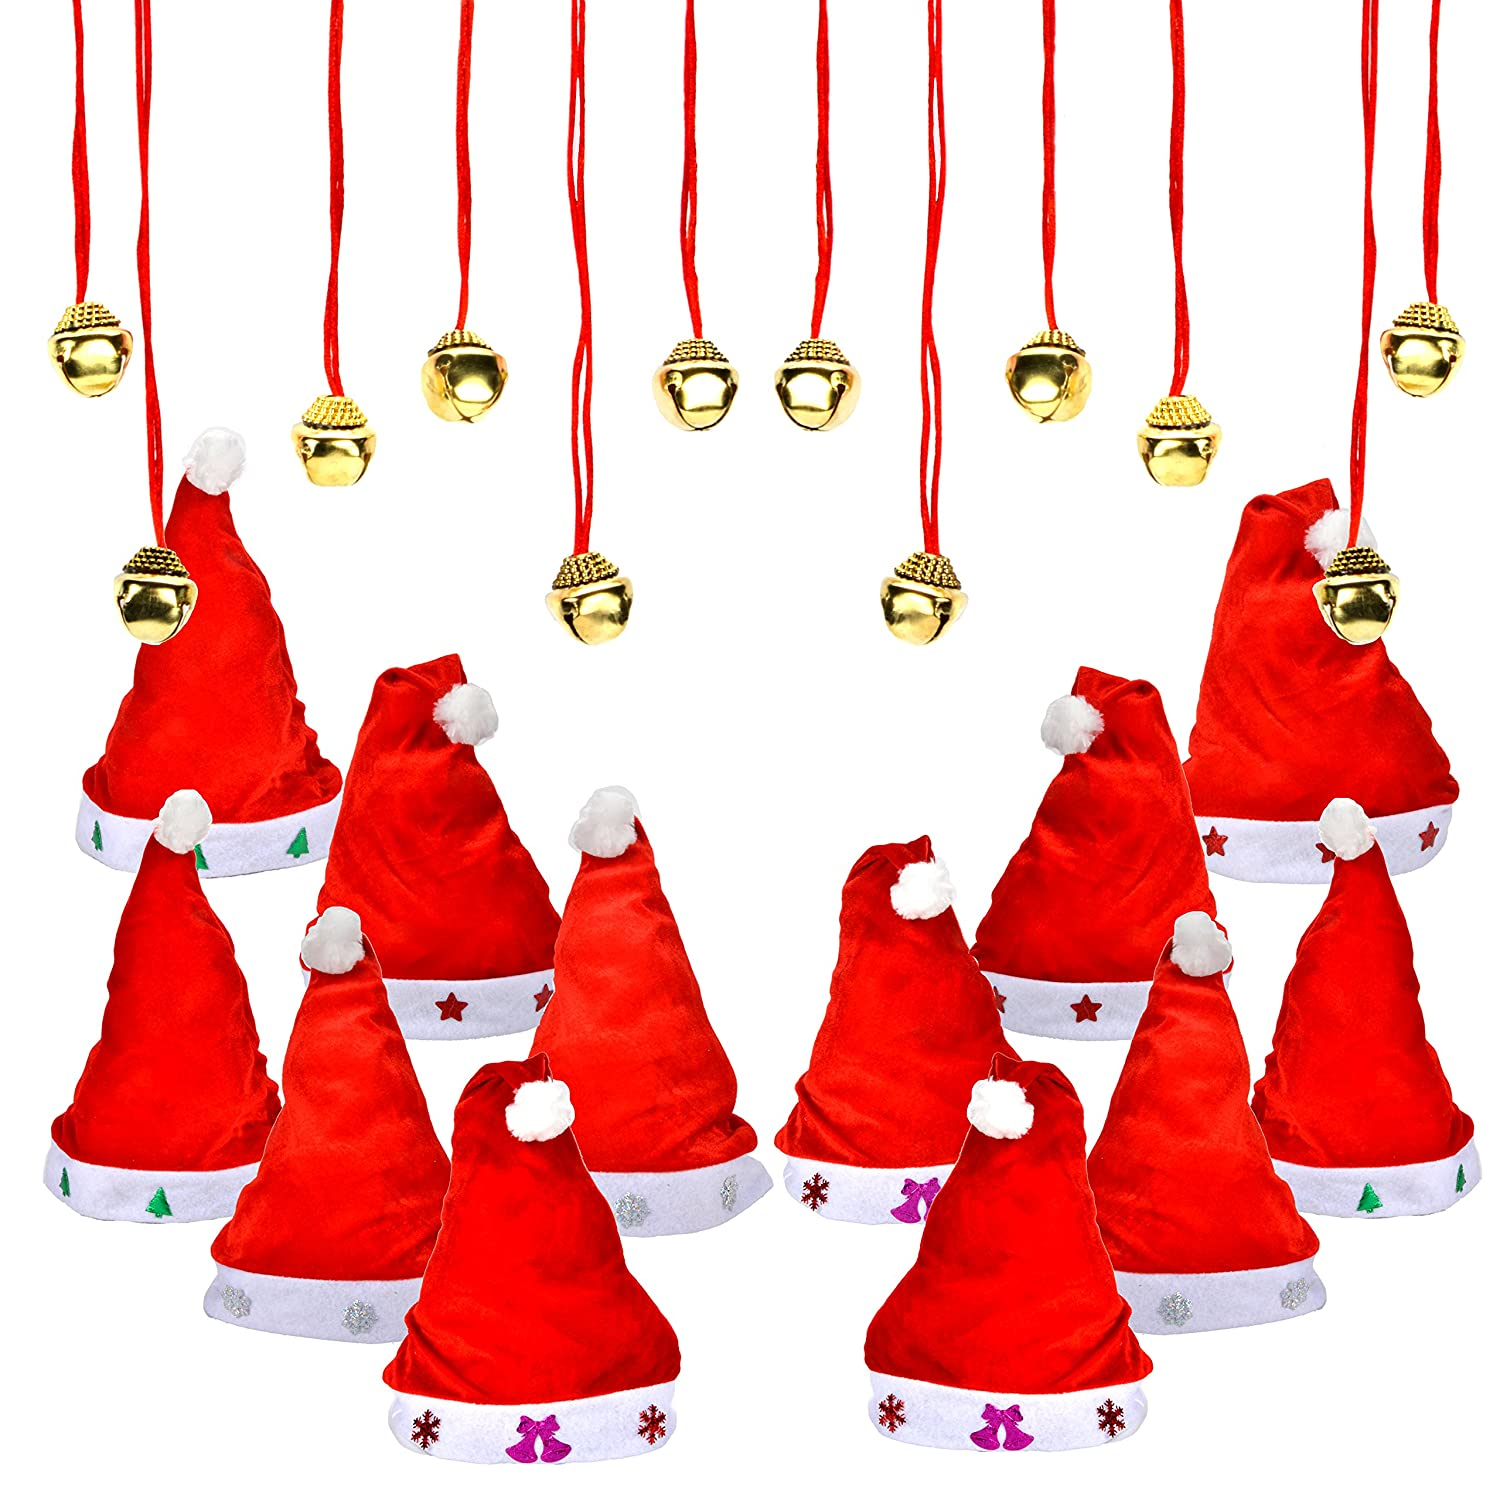 1 Dozen Fancy Santa Hats with 1 Dozen Jingle Bell Necklaces for Christmas Party-ONE SIZE FITS ALL Joyin Inc